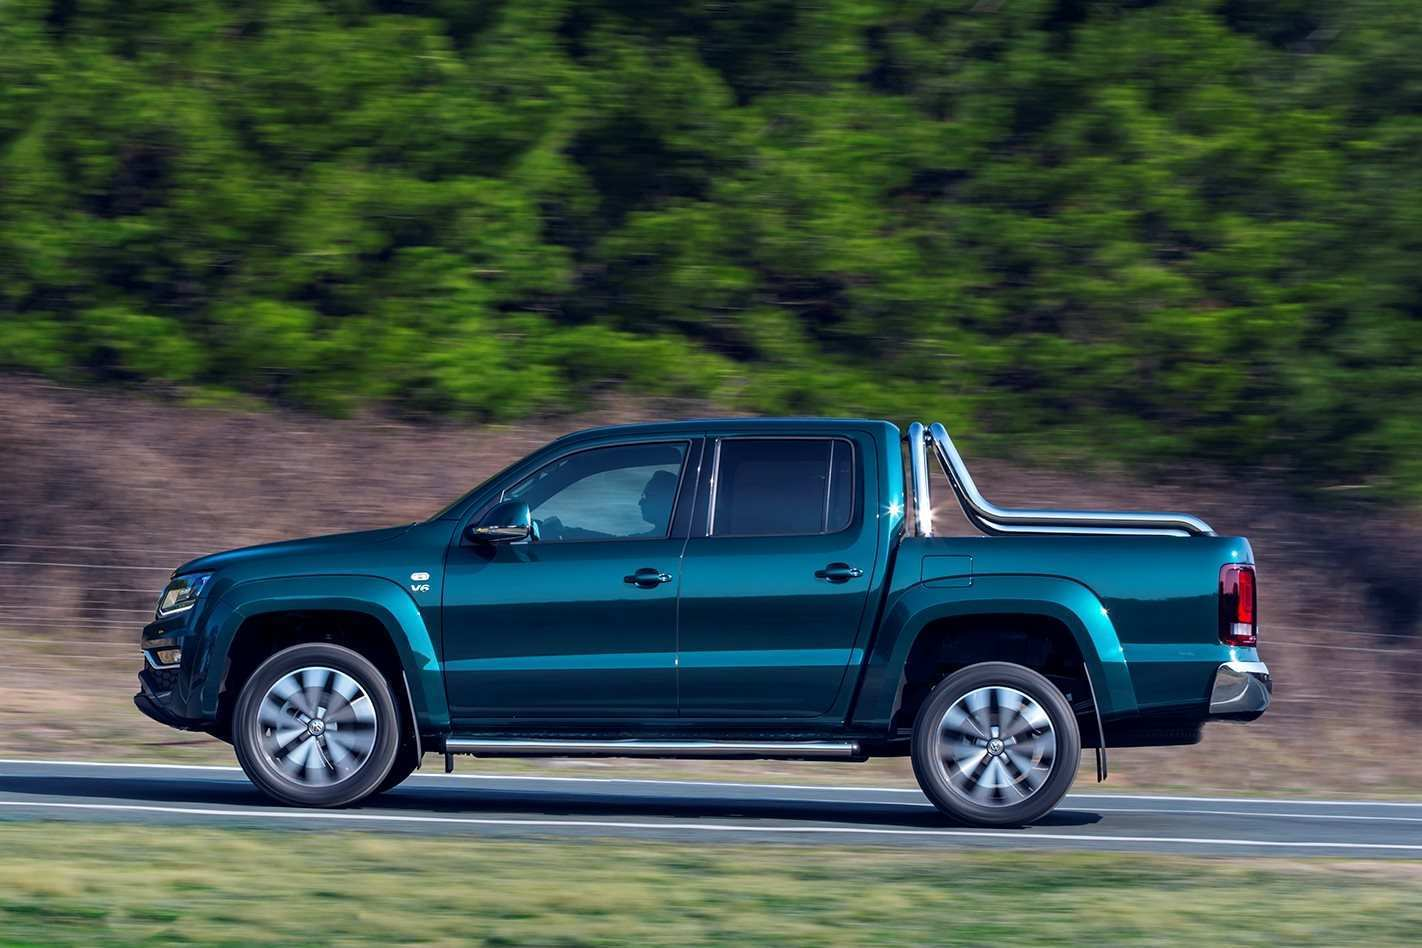 35 Best Review 2019 Vw Amarok Rumors for 2019 Vw Amarok